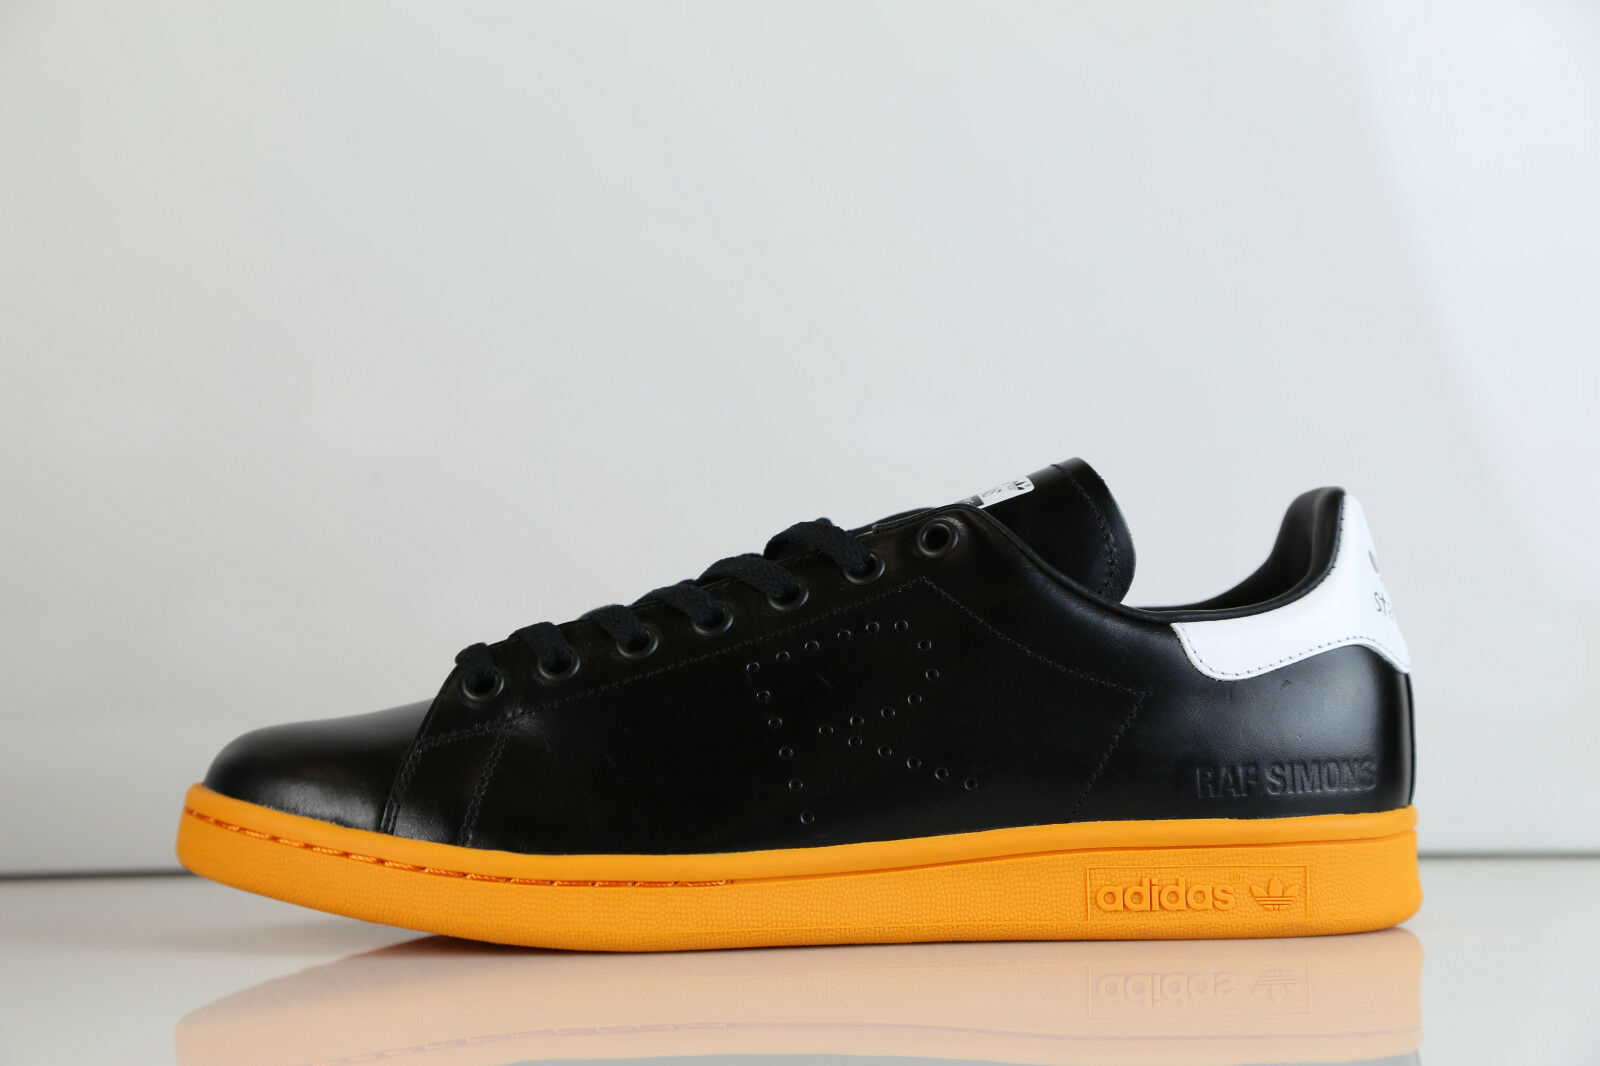 Adidas X Raf Simons Stan Smith Black Orange BB2647 400 7.5-12 rf